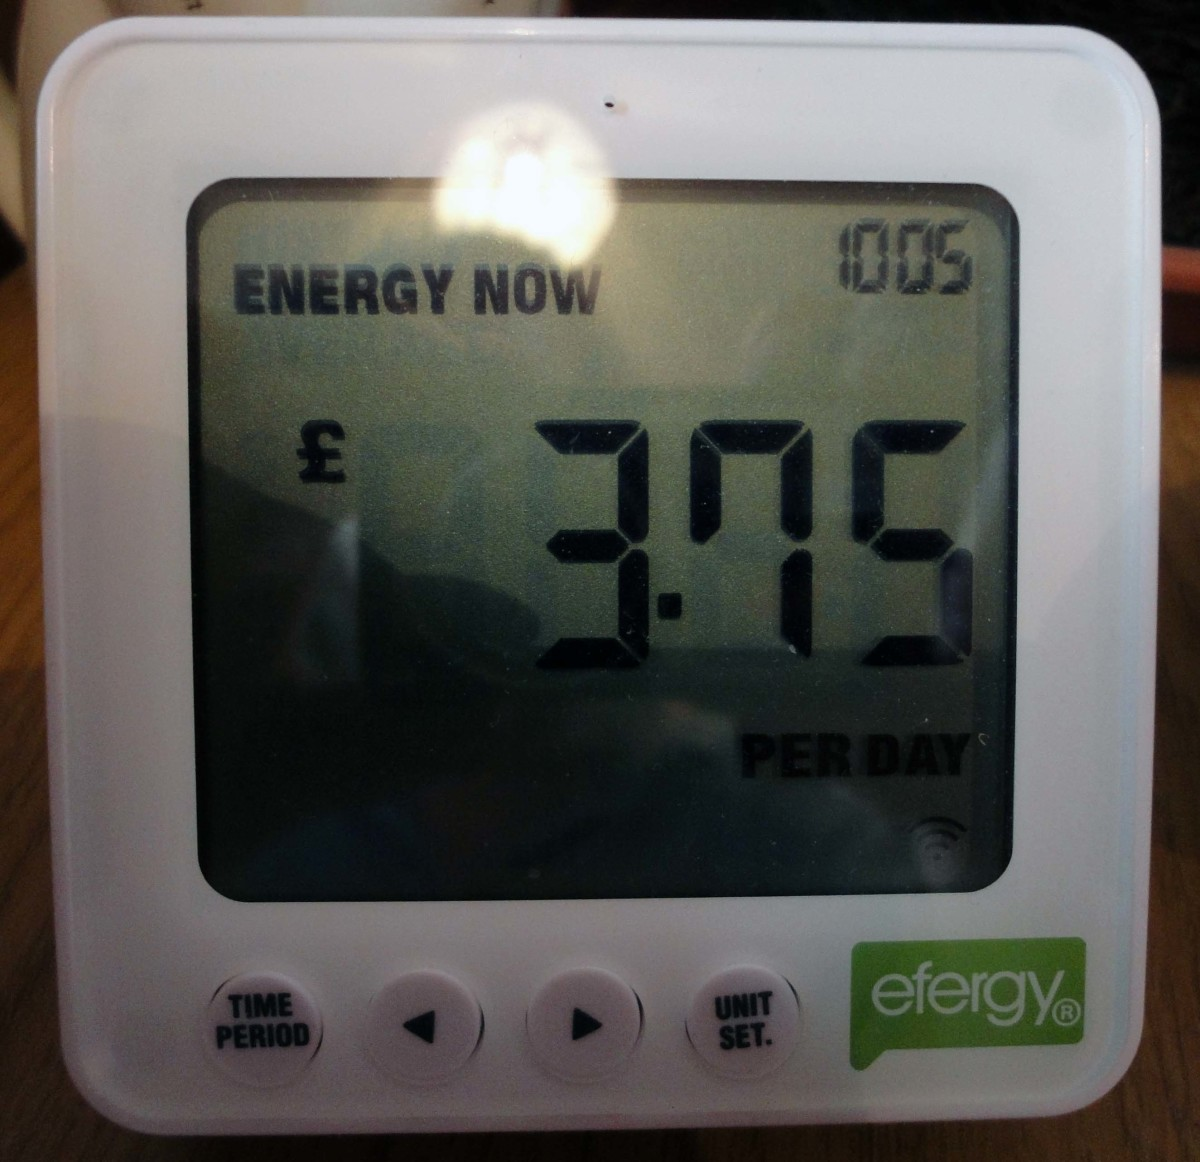 As in previous image plus when the living room lights are switched on e.g. an extra 3p an hour.